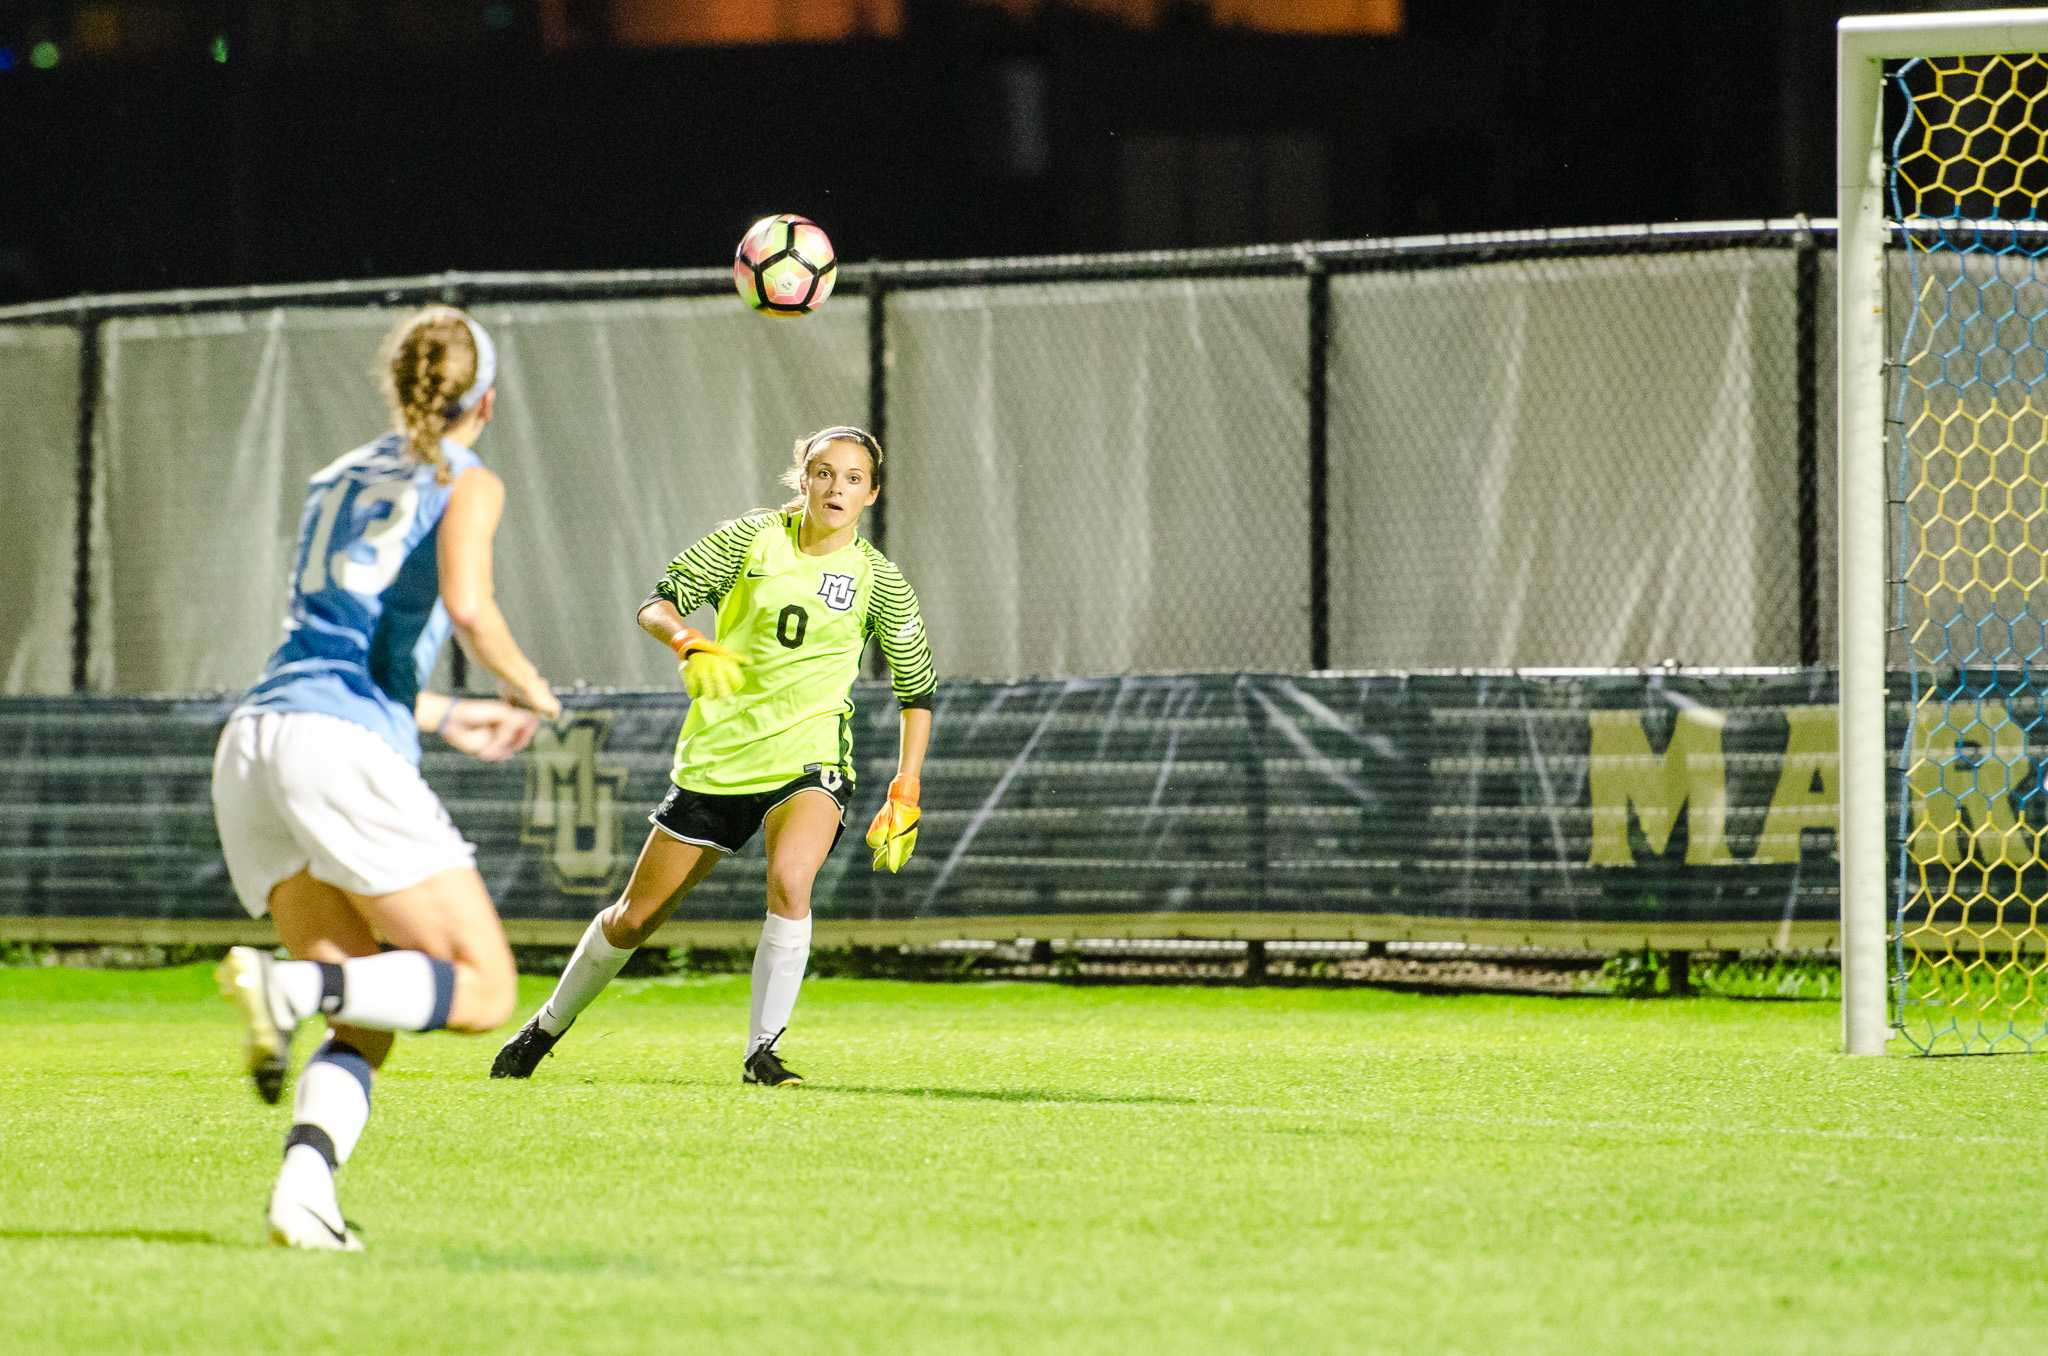 Maddy Henry made eight saves in the losing effort.